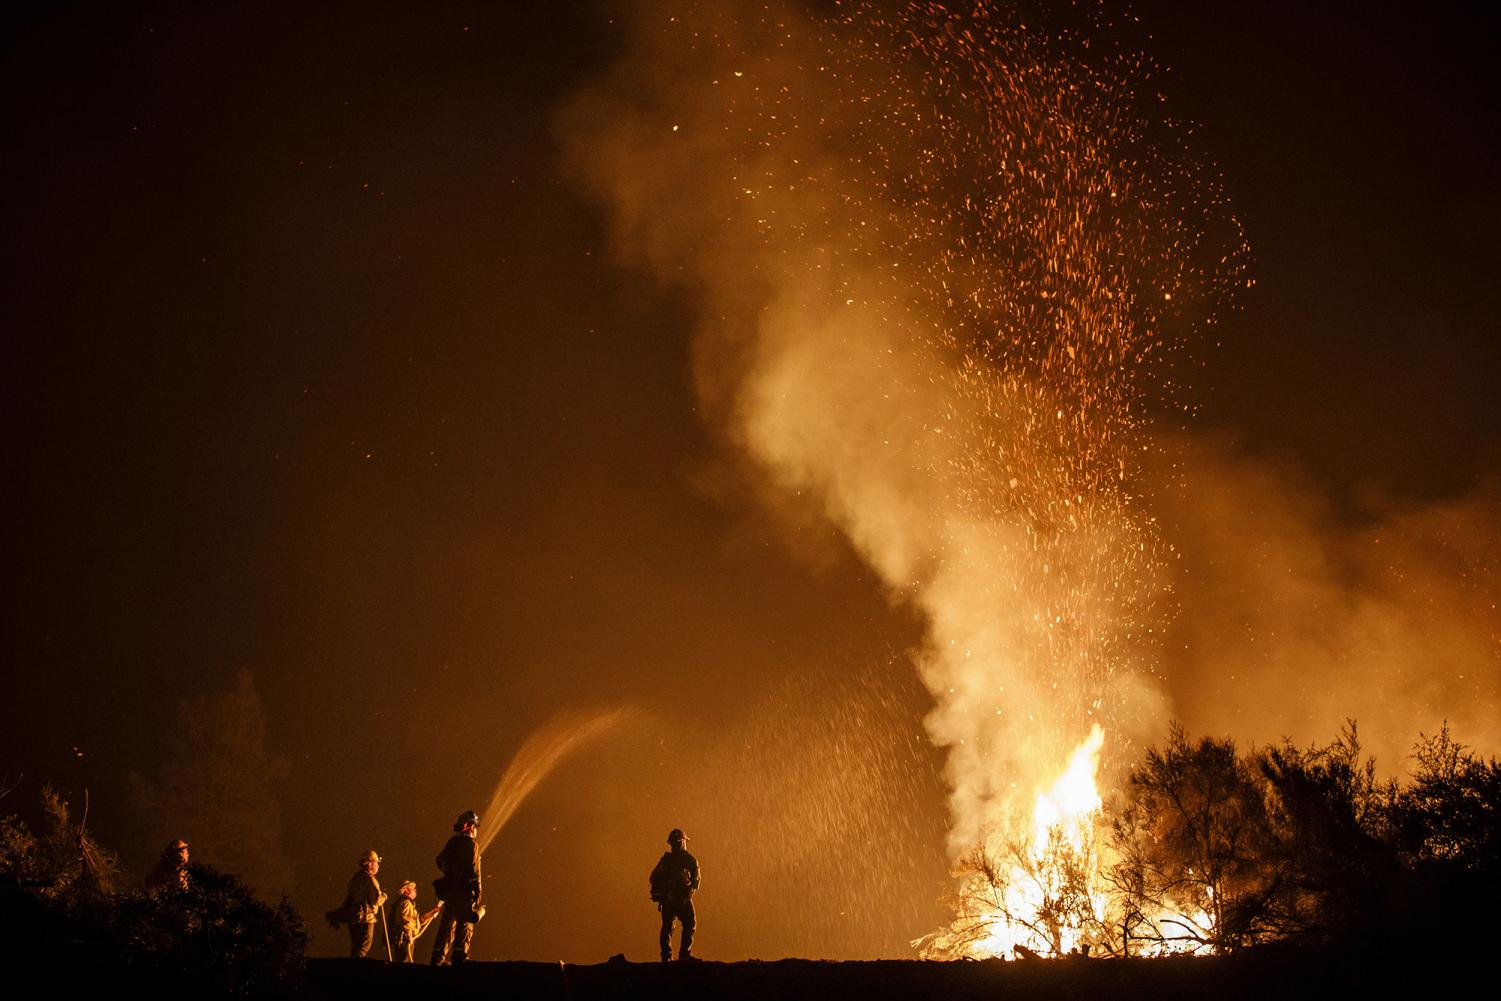 Firefighters monitor a burn operation on top of a ridge near the town of Ladoga, Calif., on August 7, 2018.